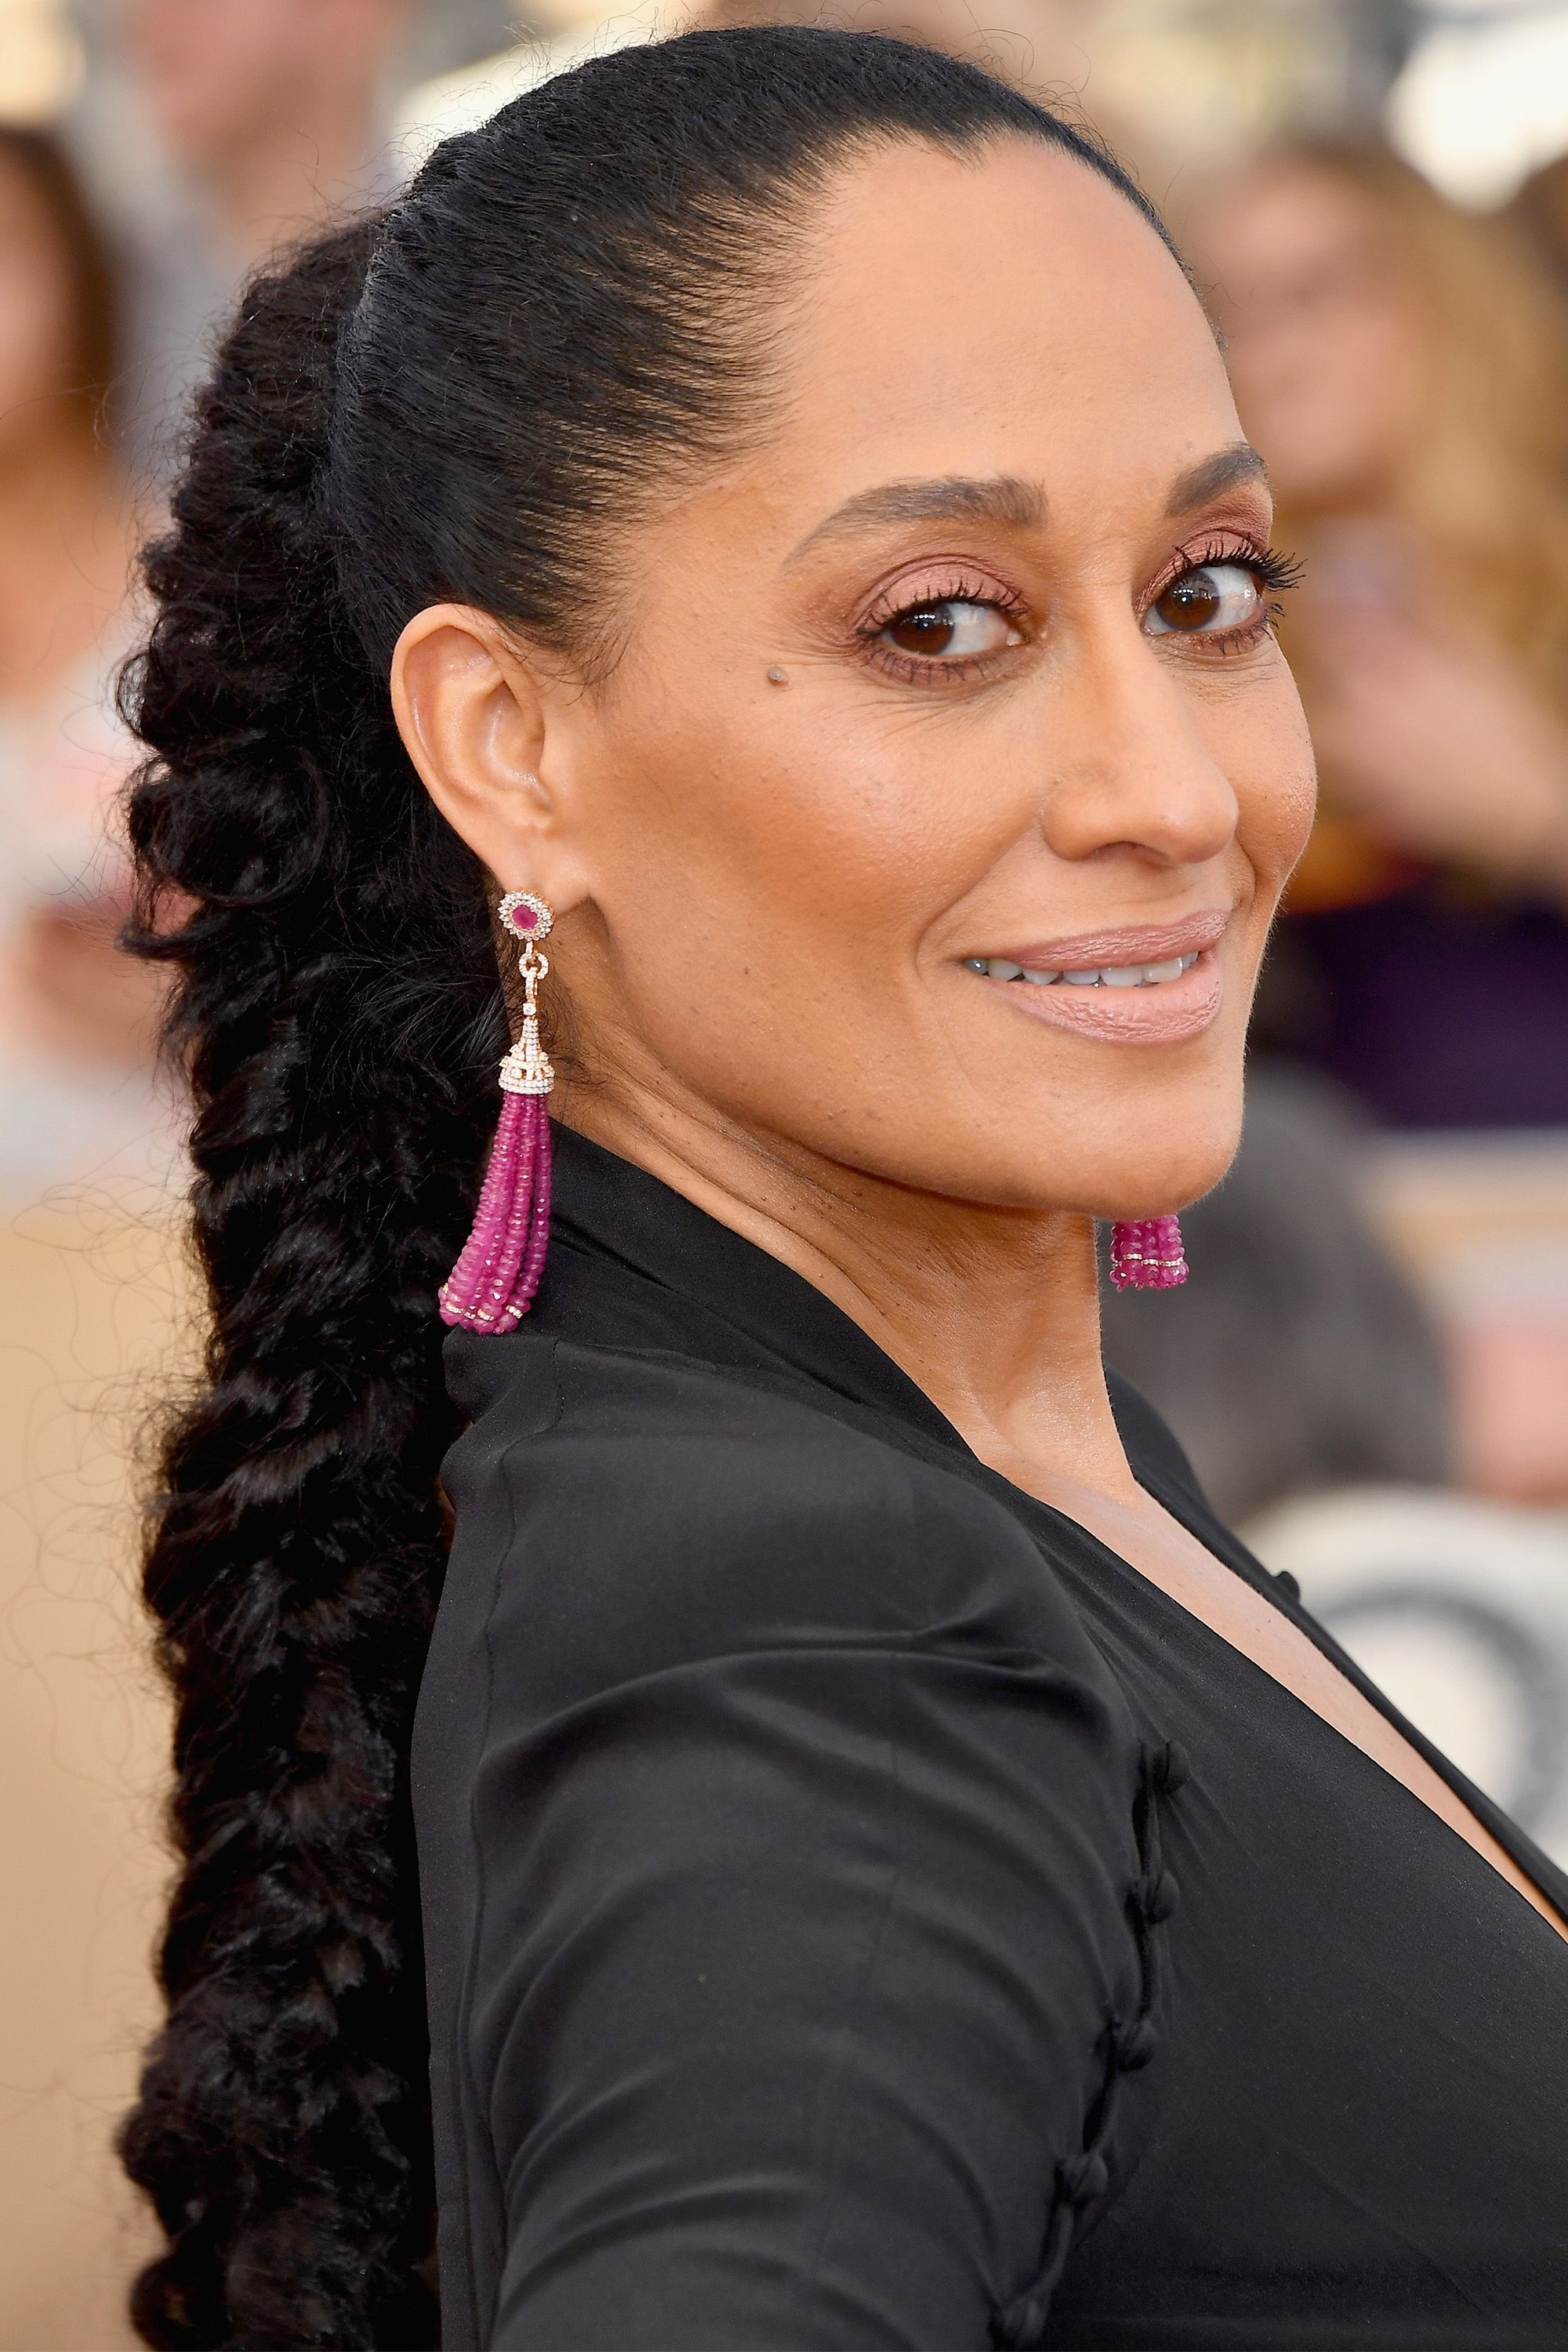 Trendy Long And Sleek Black Ponytail Hairstyles For 20 New Ways To Wear A Ponytail – Best Celebrity Ponytails Of  (View 20 of 20)